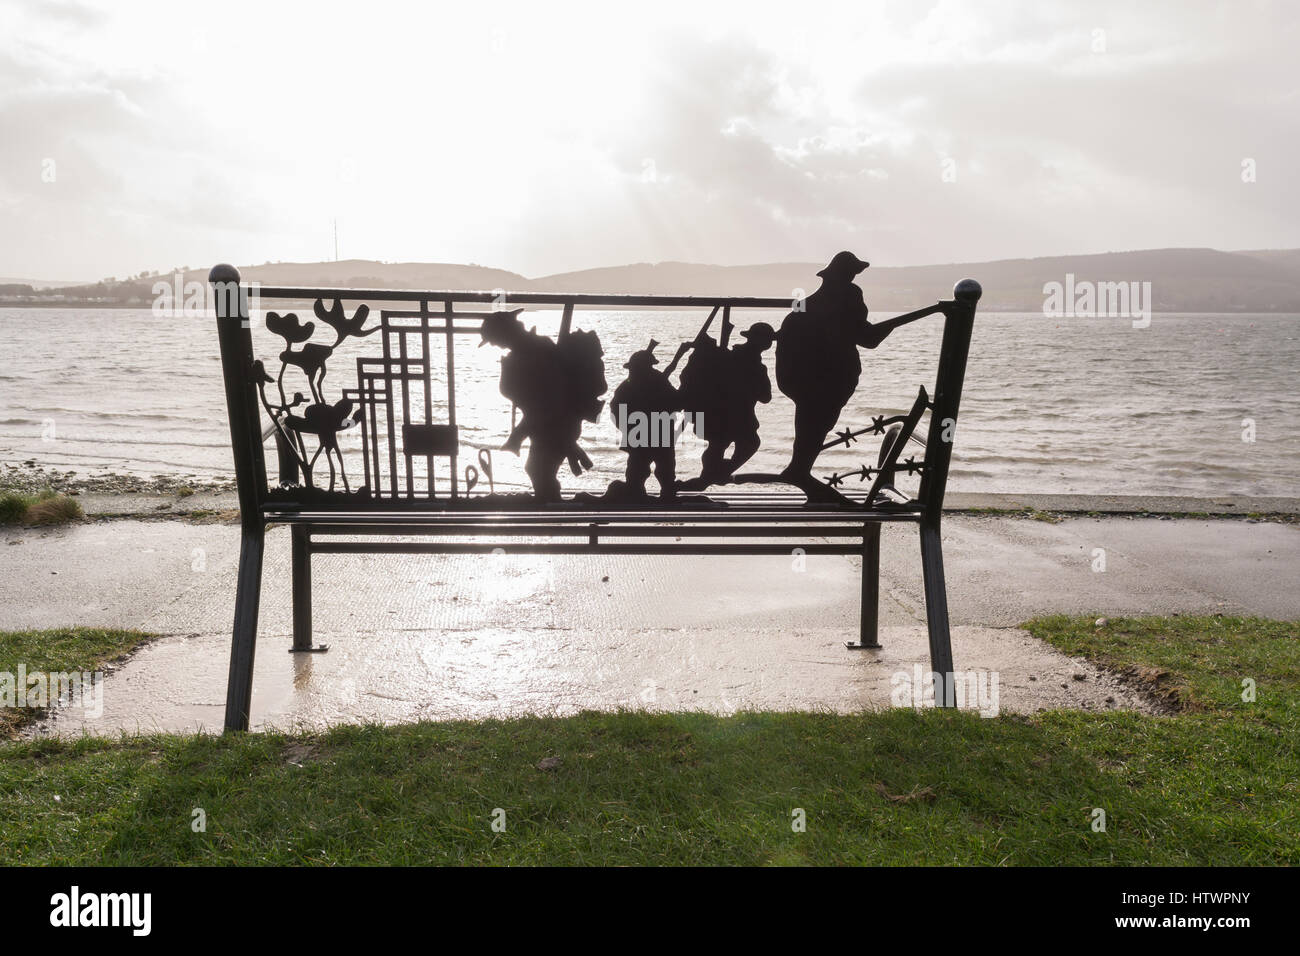 Remembrance bench for armed forces overlooking the Firth of Clyde, Helensburgh, Scotland, UK - Stock Image